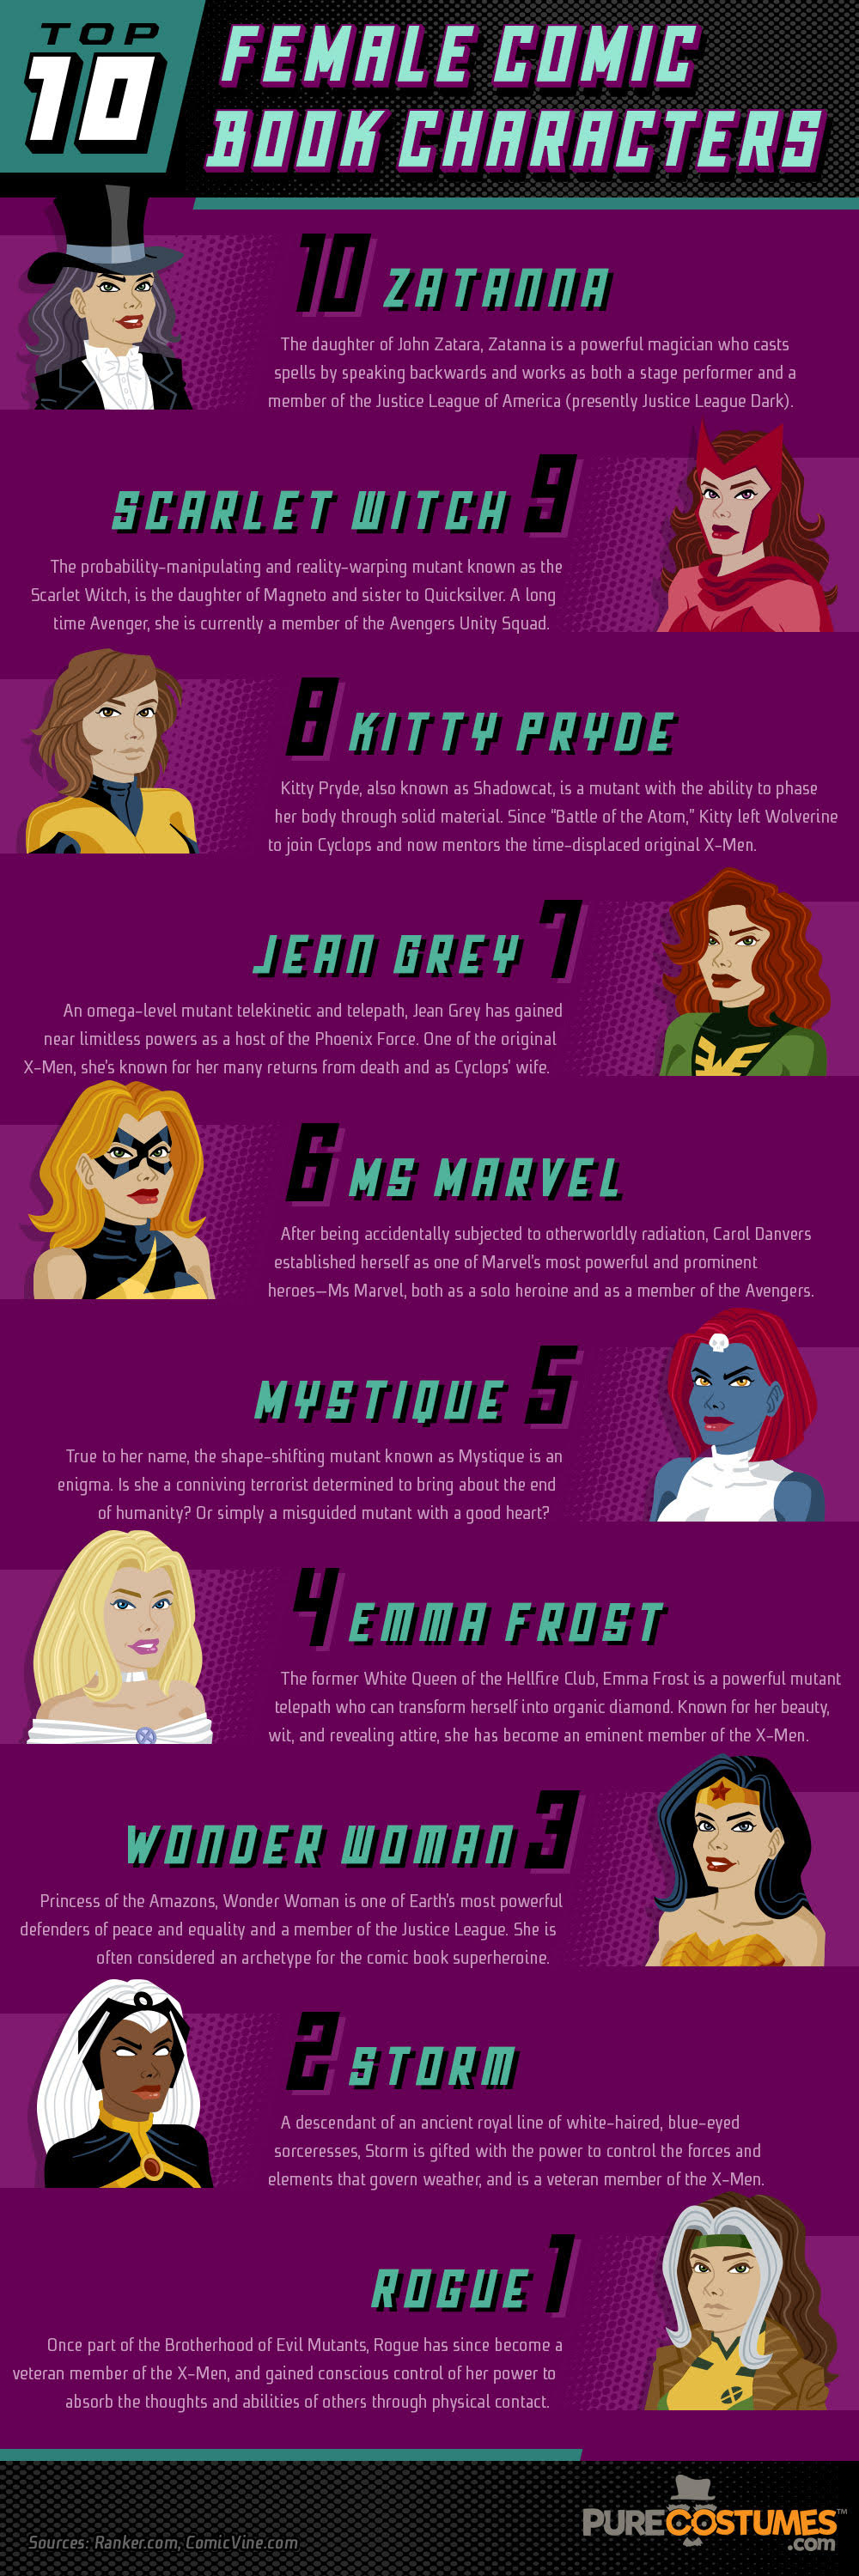 Top-Ten-Female-Comic-Book